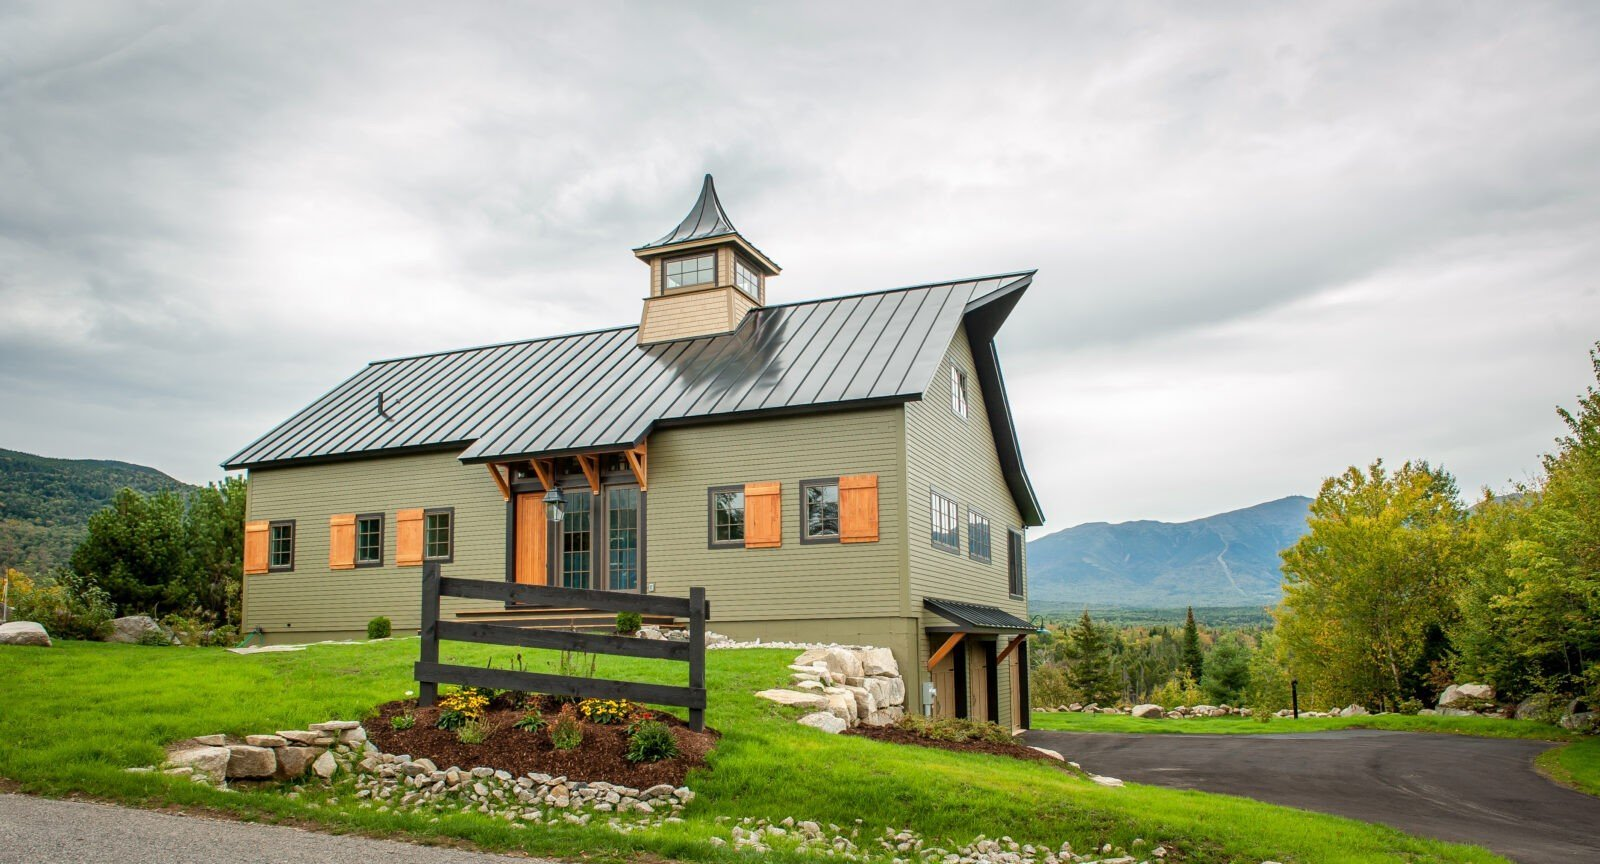 Top notch barn home plans from the ybh design team for Barn house plan